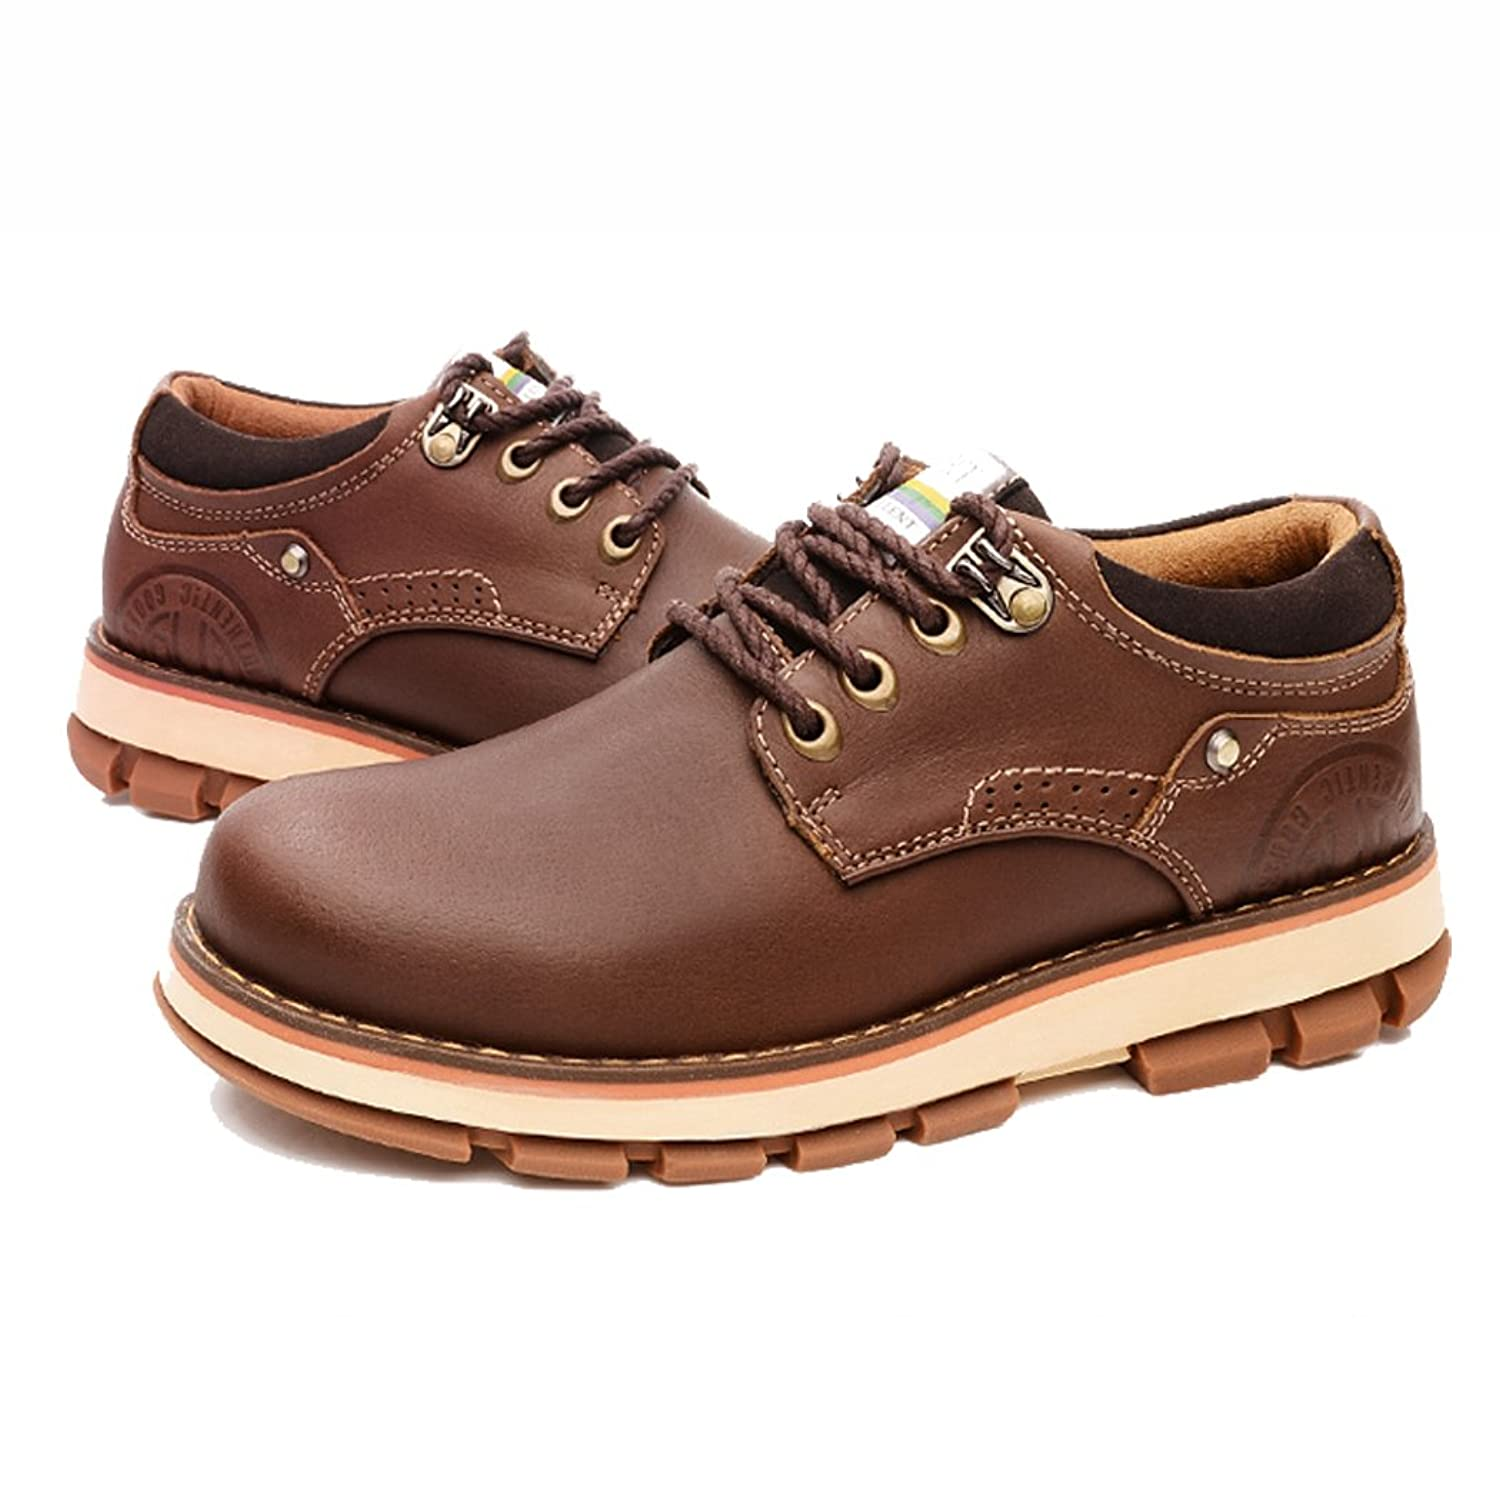 5c5327d04 Qianling Collection Men s Casual Flat Shoe Chocolate Head Layer Cowhide  Oxford Shoes US7